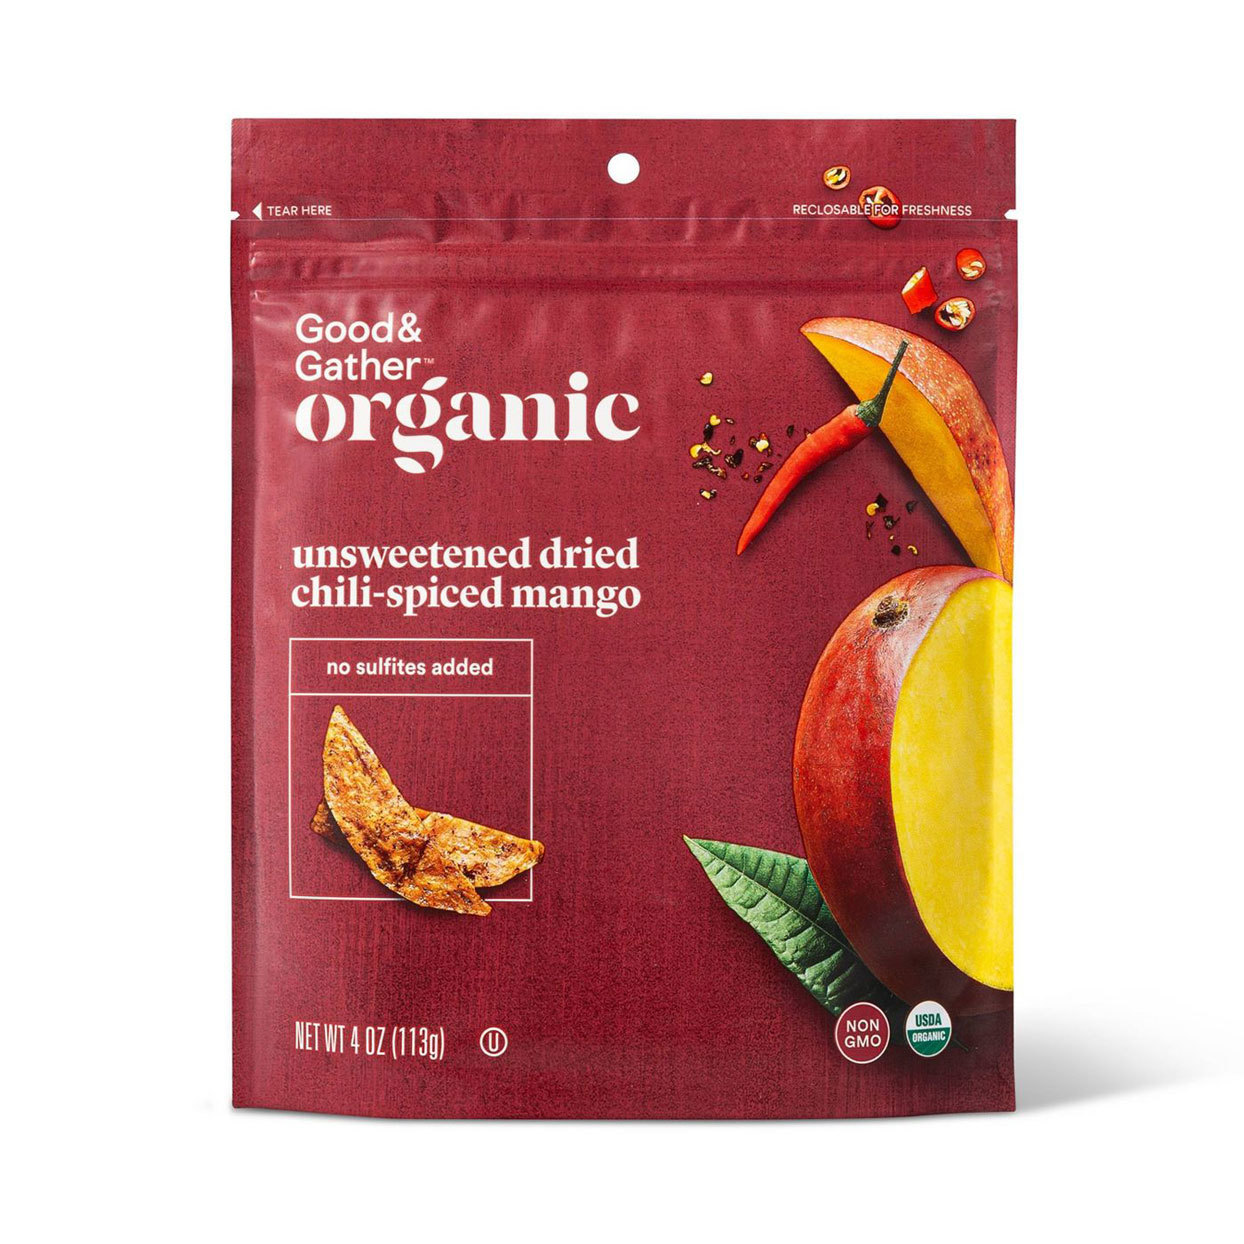 Bag of Target's organic, unsweetened dried chili-spiced mango